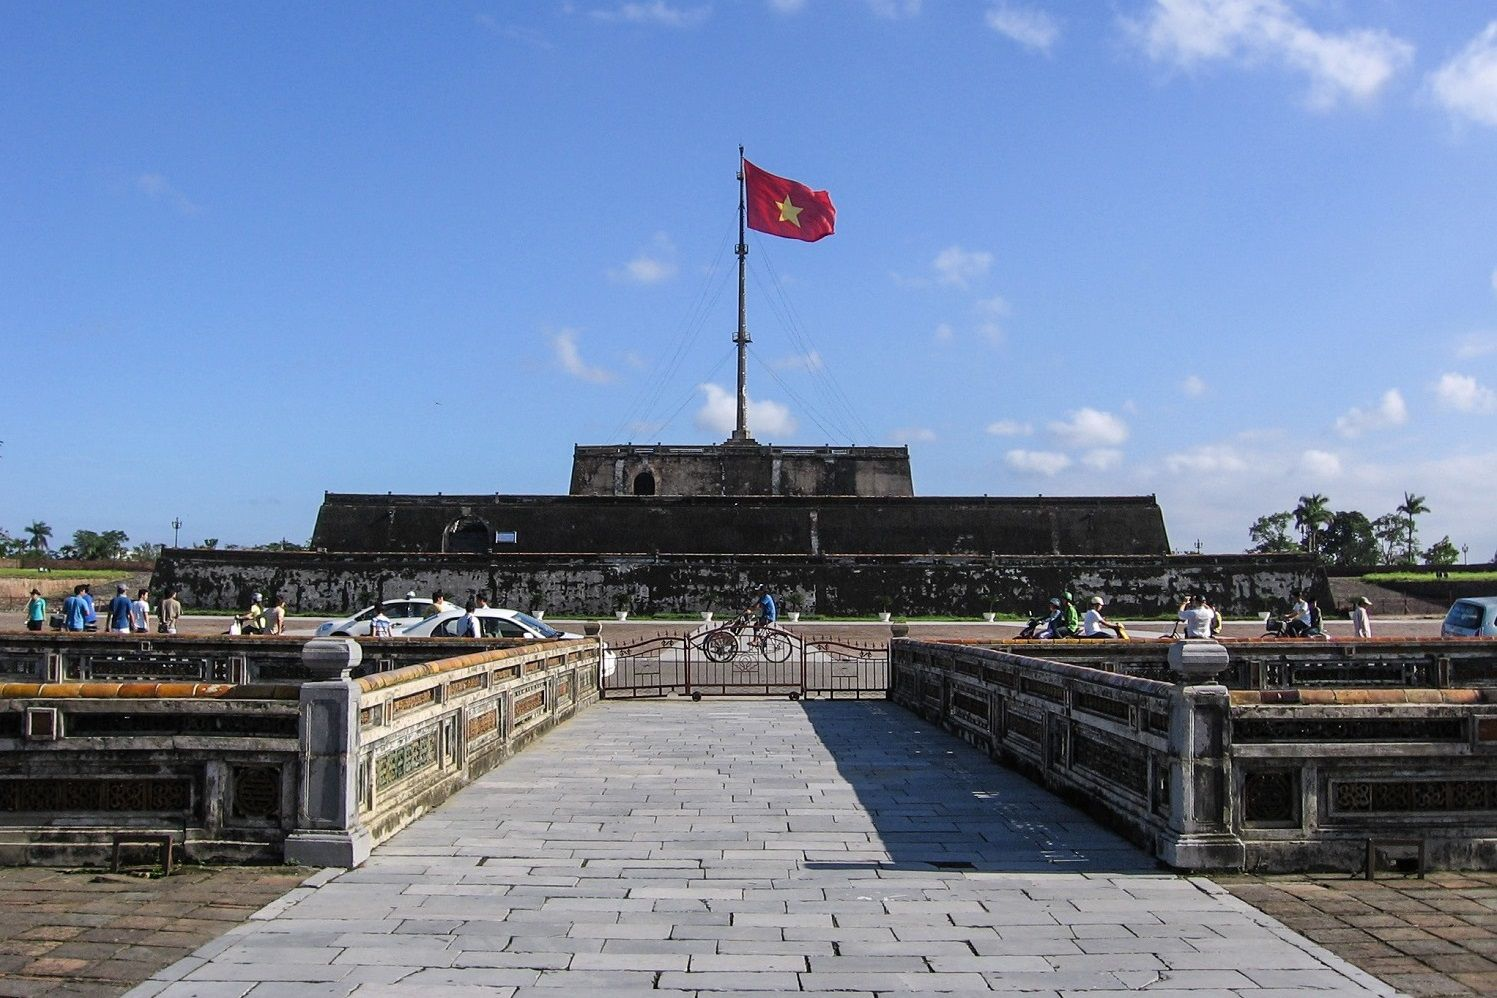 Learn About A Lost Empire in this Walking Tour of Hue Citadel in Vietnam